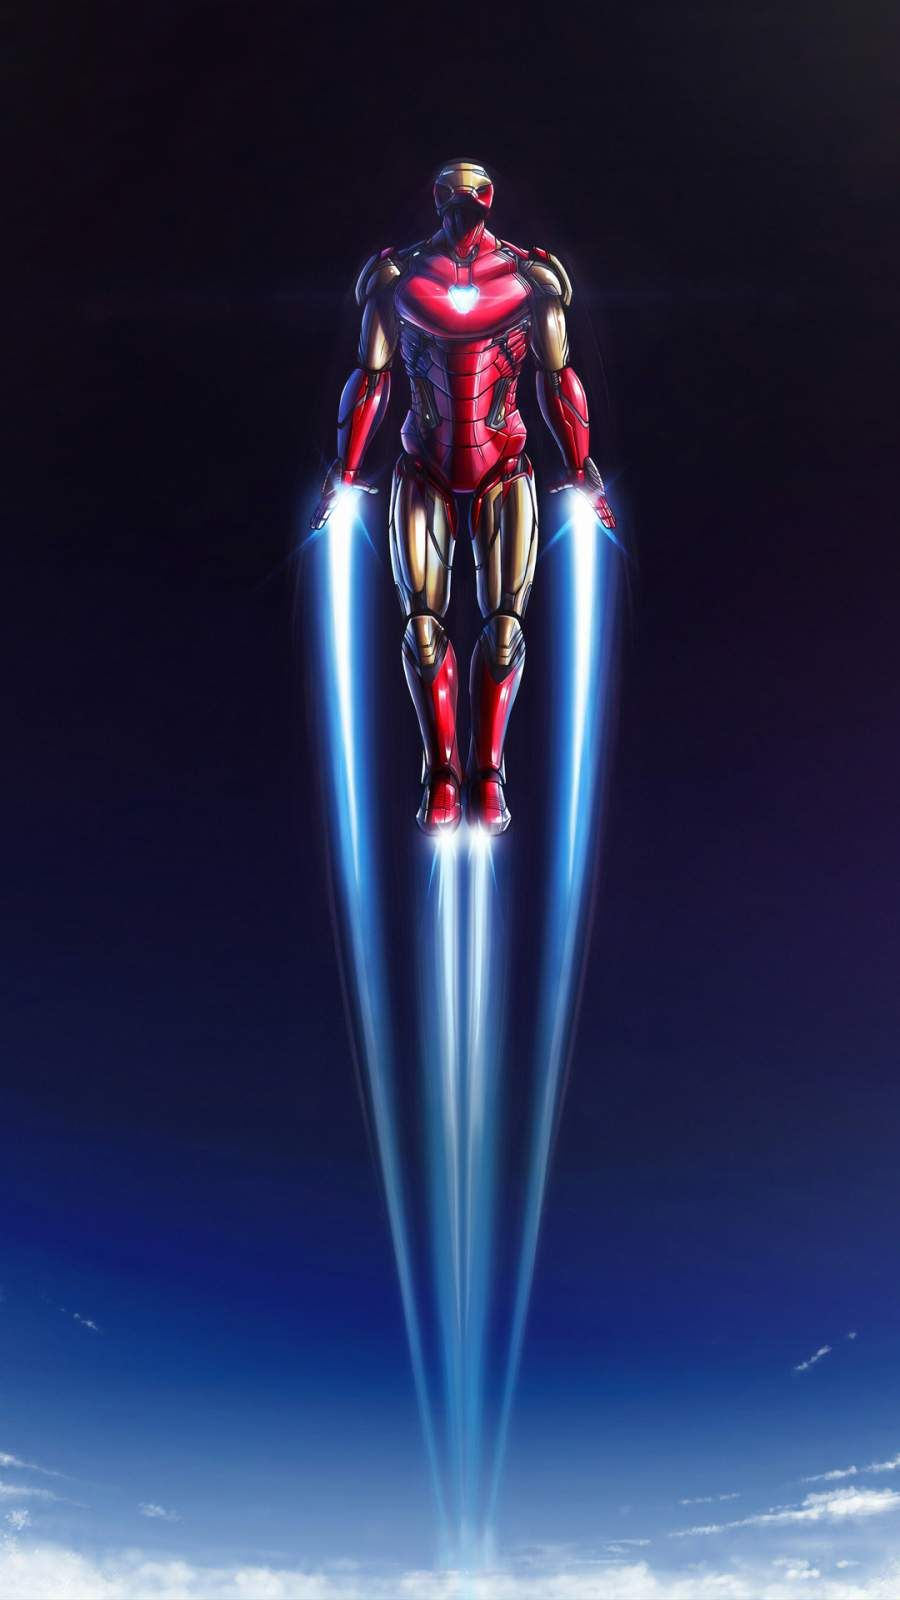 Iron Man Flying 4k Iphone Wallpaper Iron Man Avengers Iron Man Flying Iron Man Art